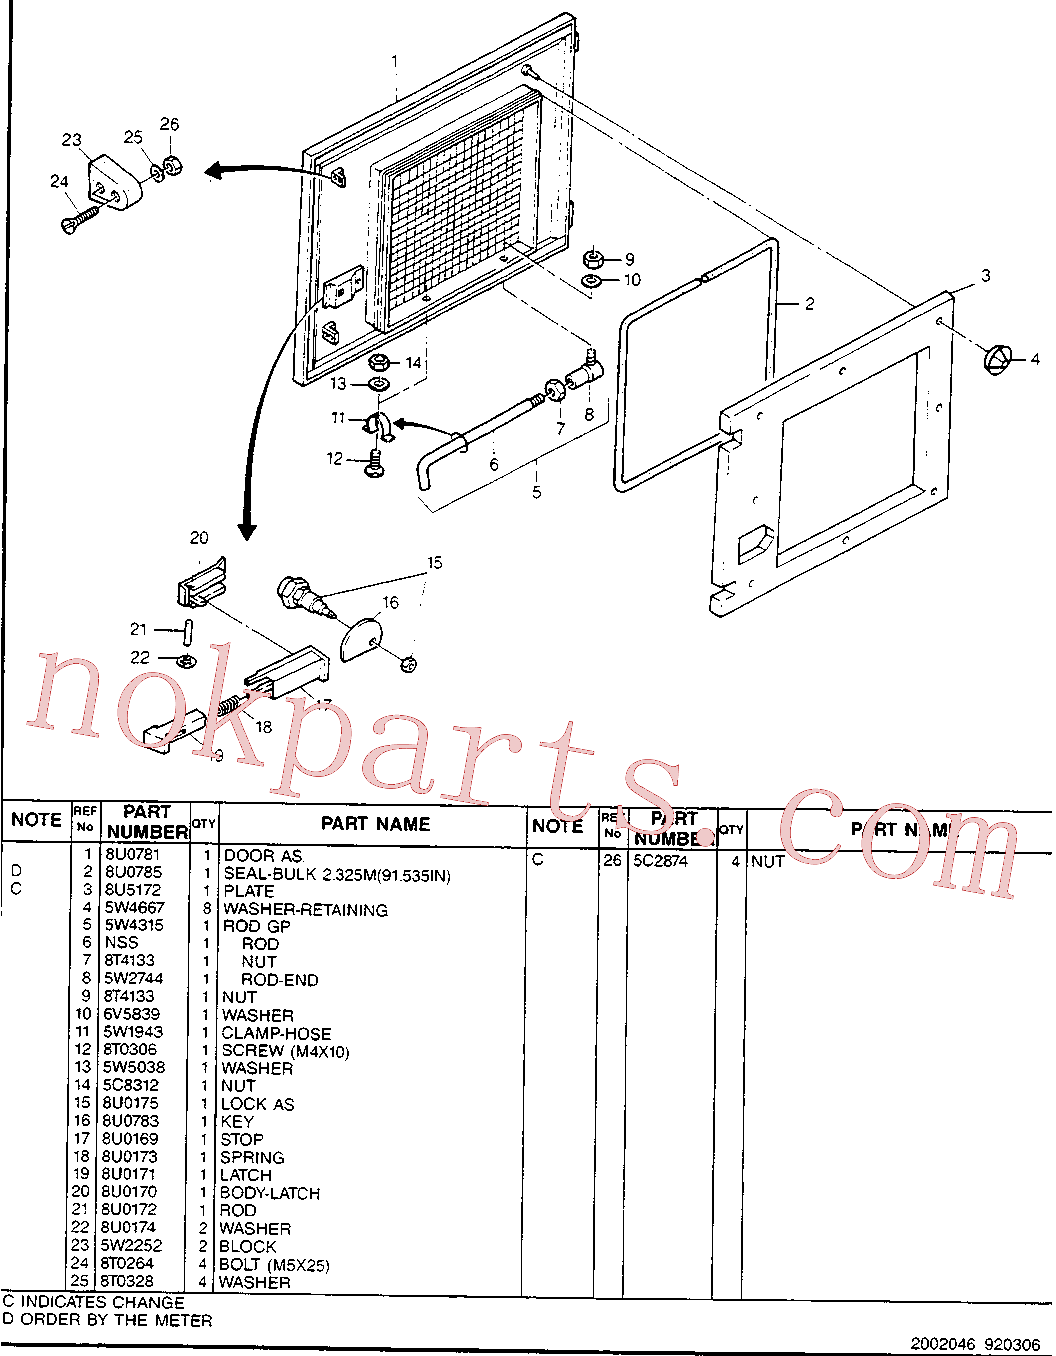 CAT 5W-5038 for M318 Excavator(EXC) chassis & undercarriage 8U-5125 Assembly